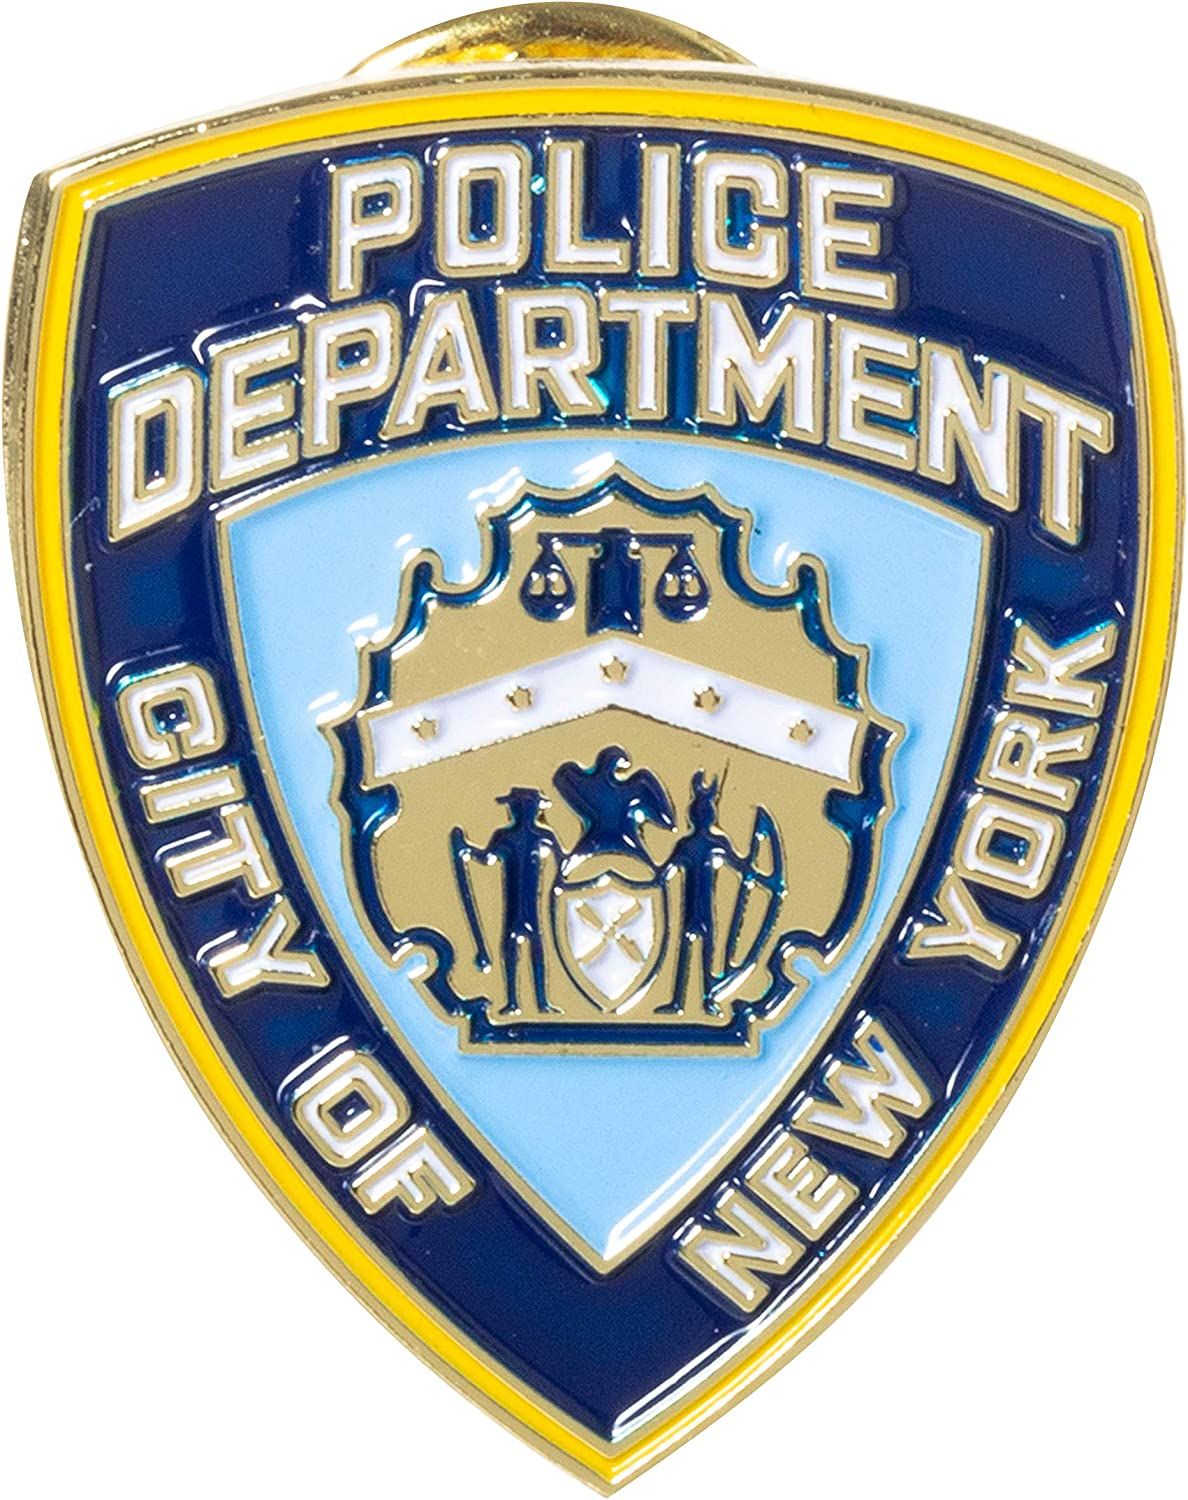 Officially Licensed City of New York Police Department NYPD Souvenir Lapel Pin